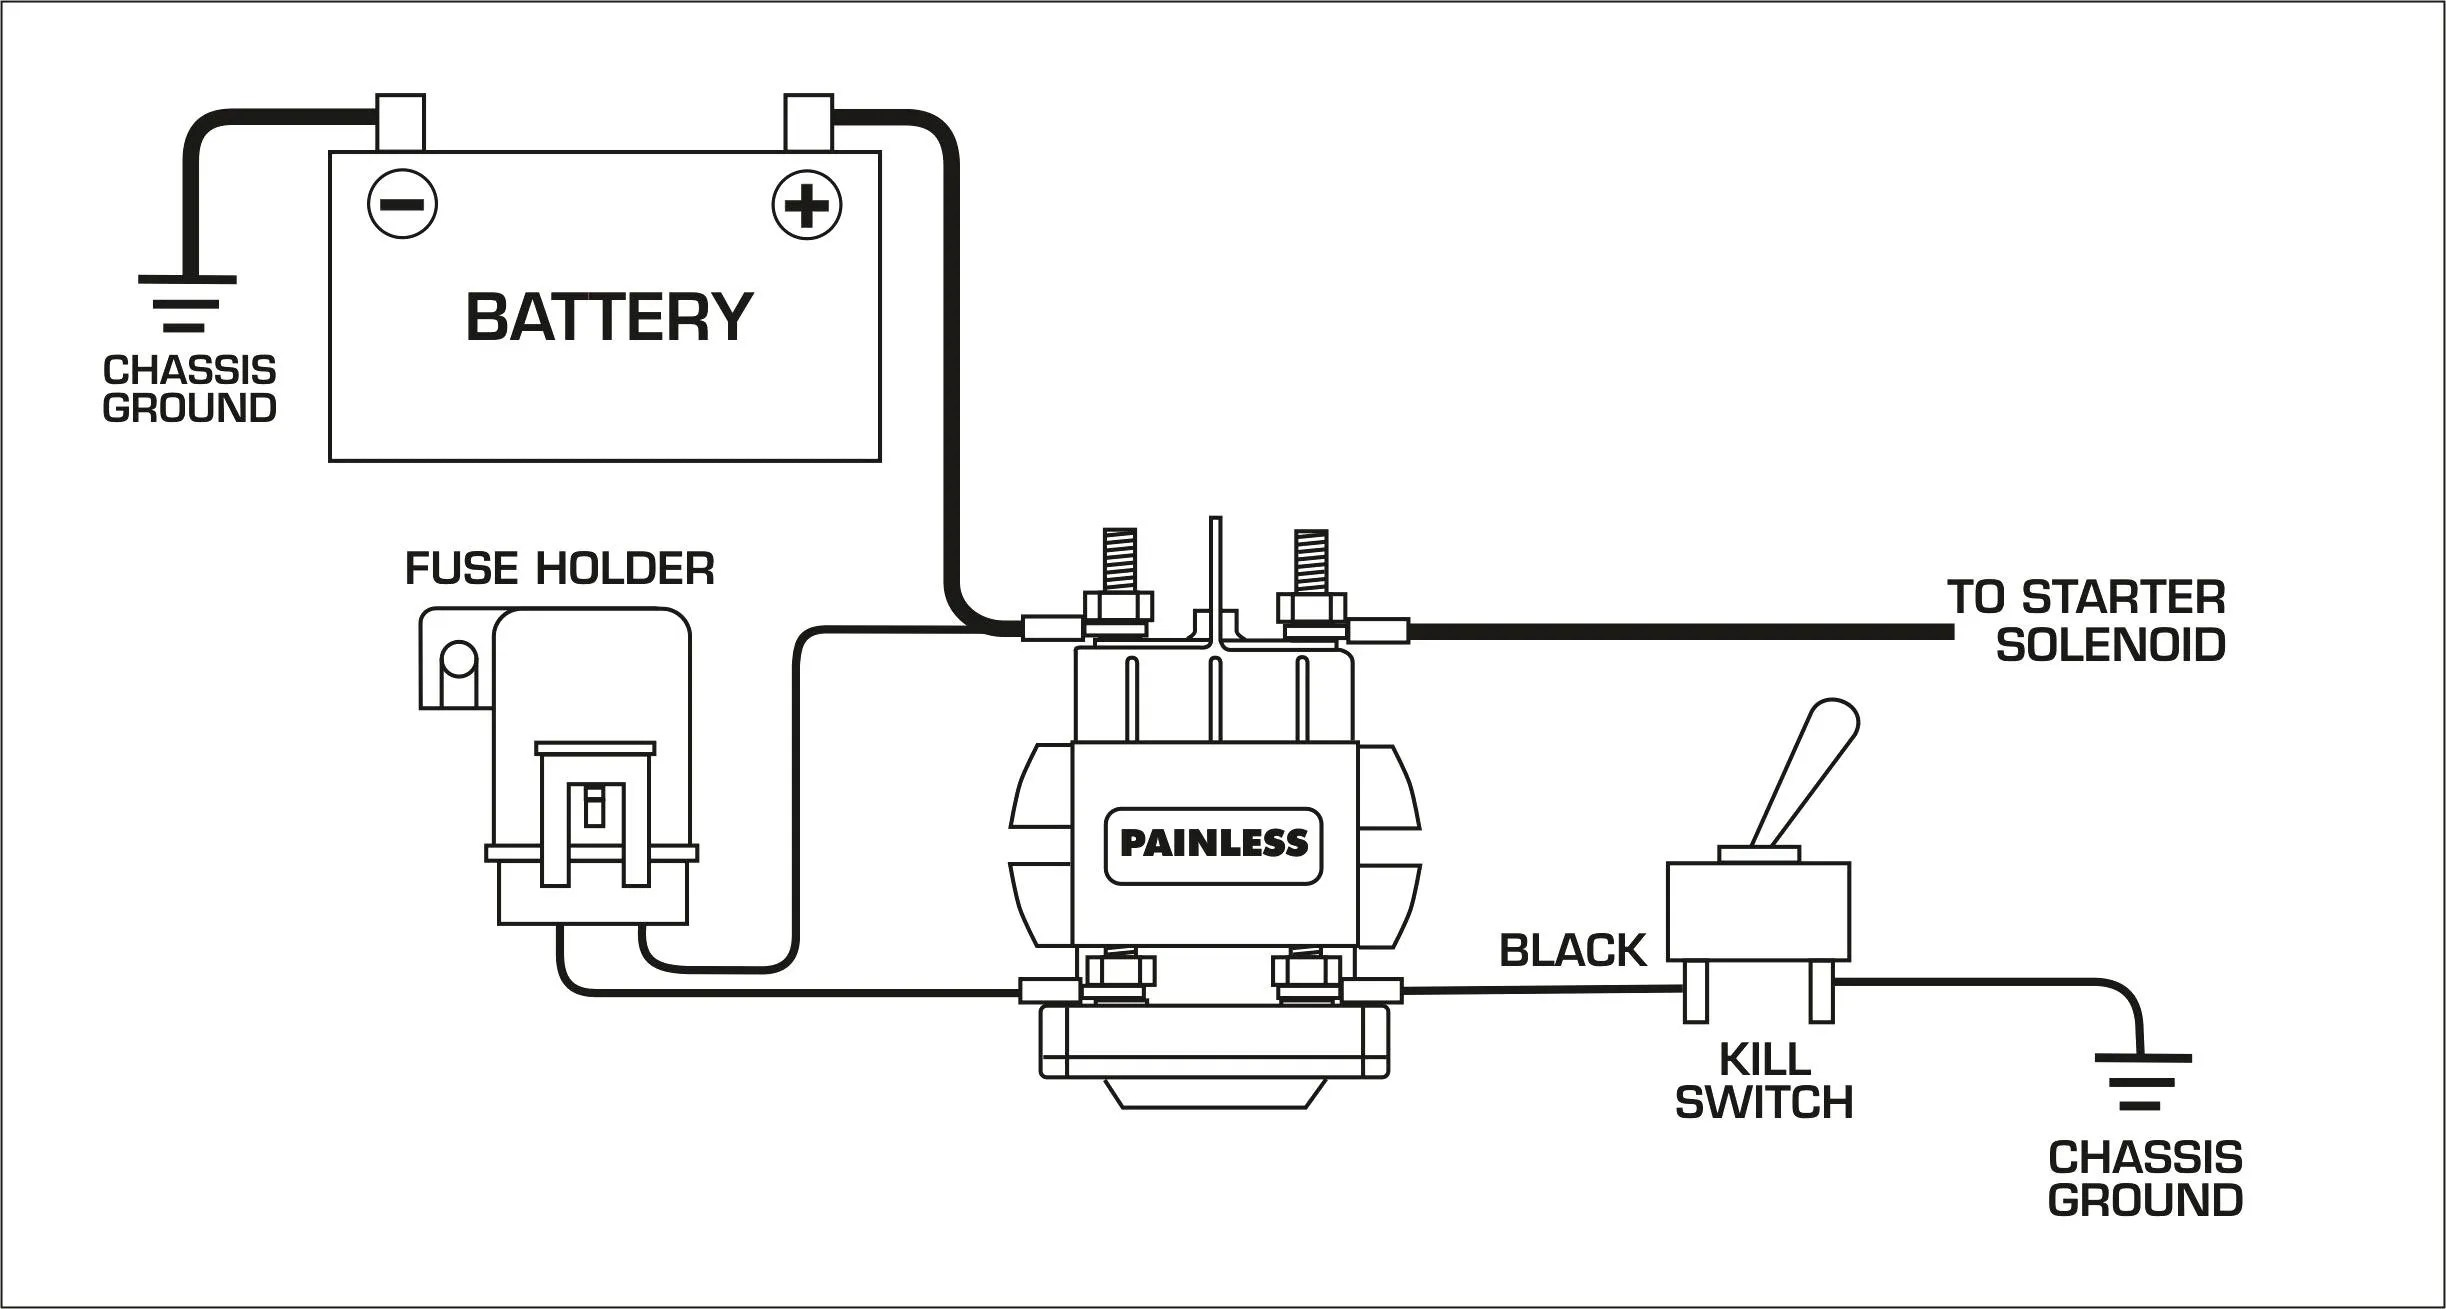 Longacre Kill Switch Wiring Diagram - Wiring Diagrams Hidden on